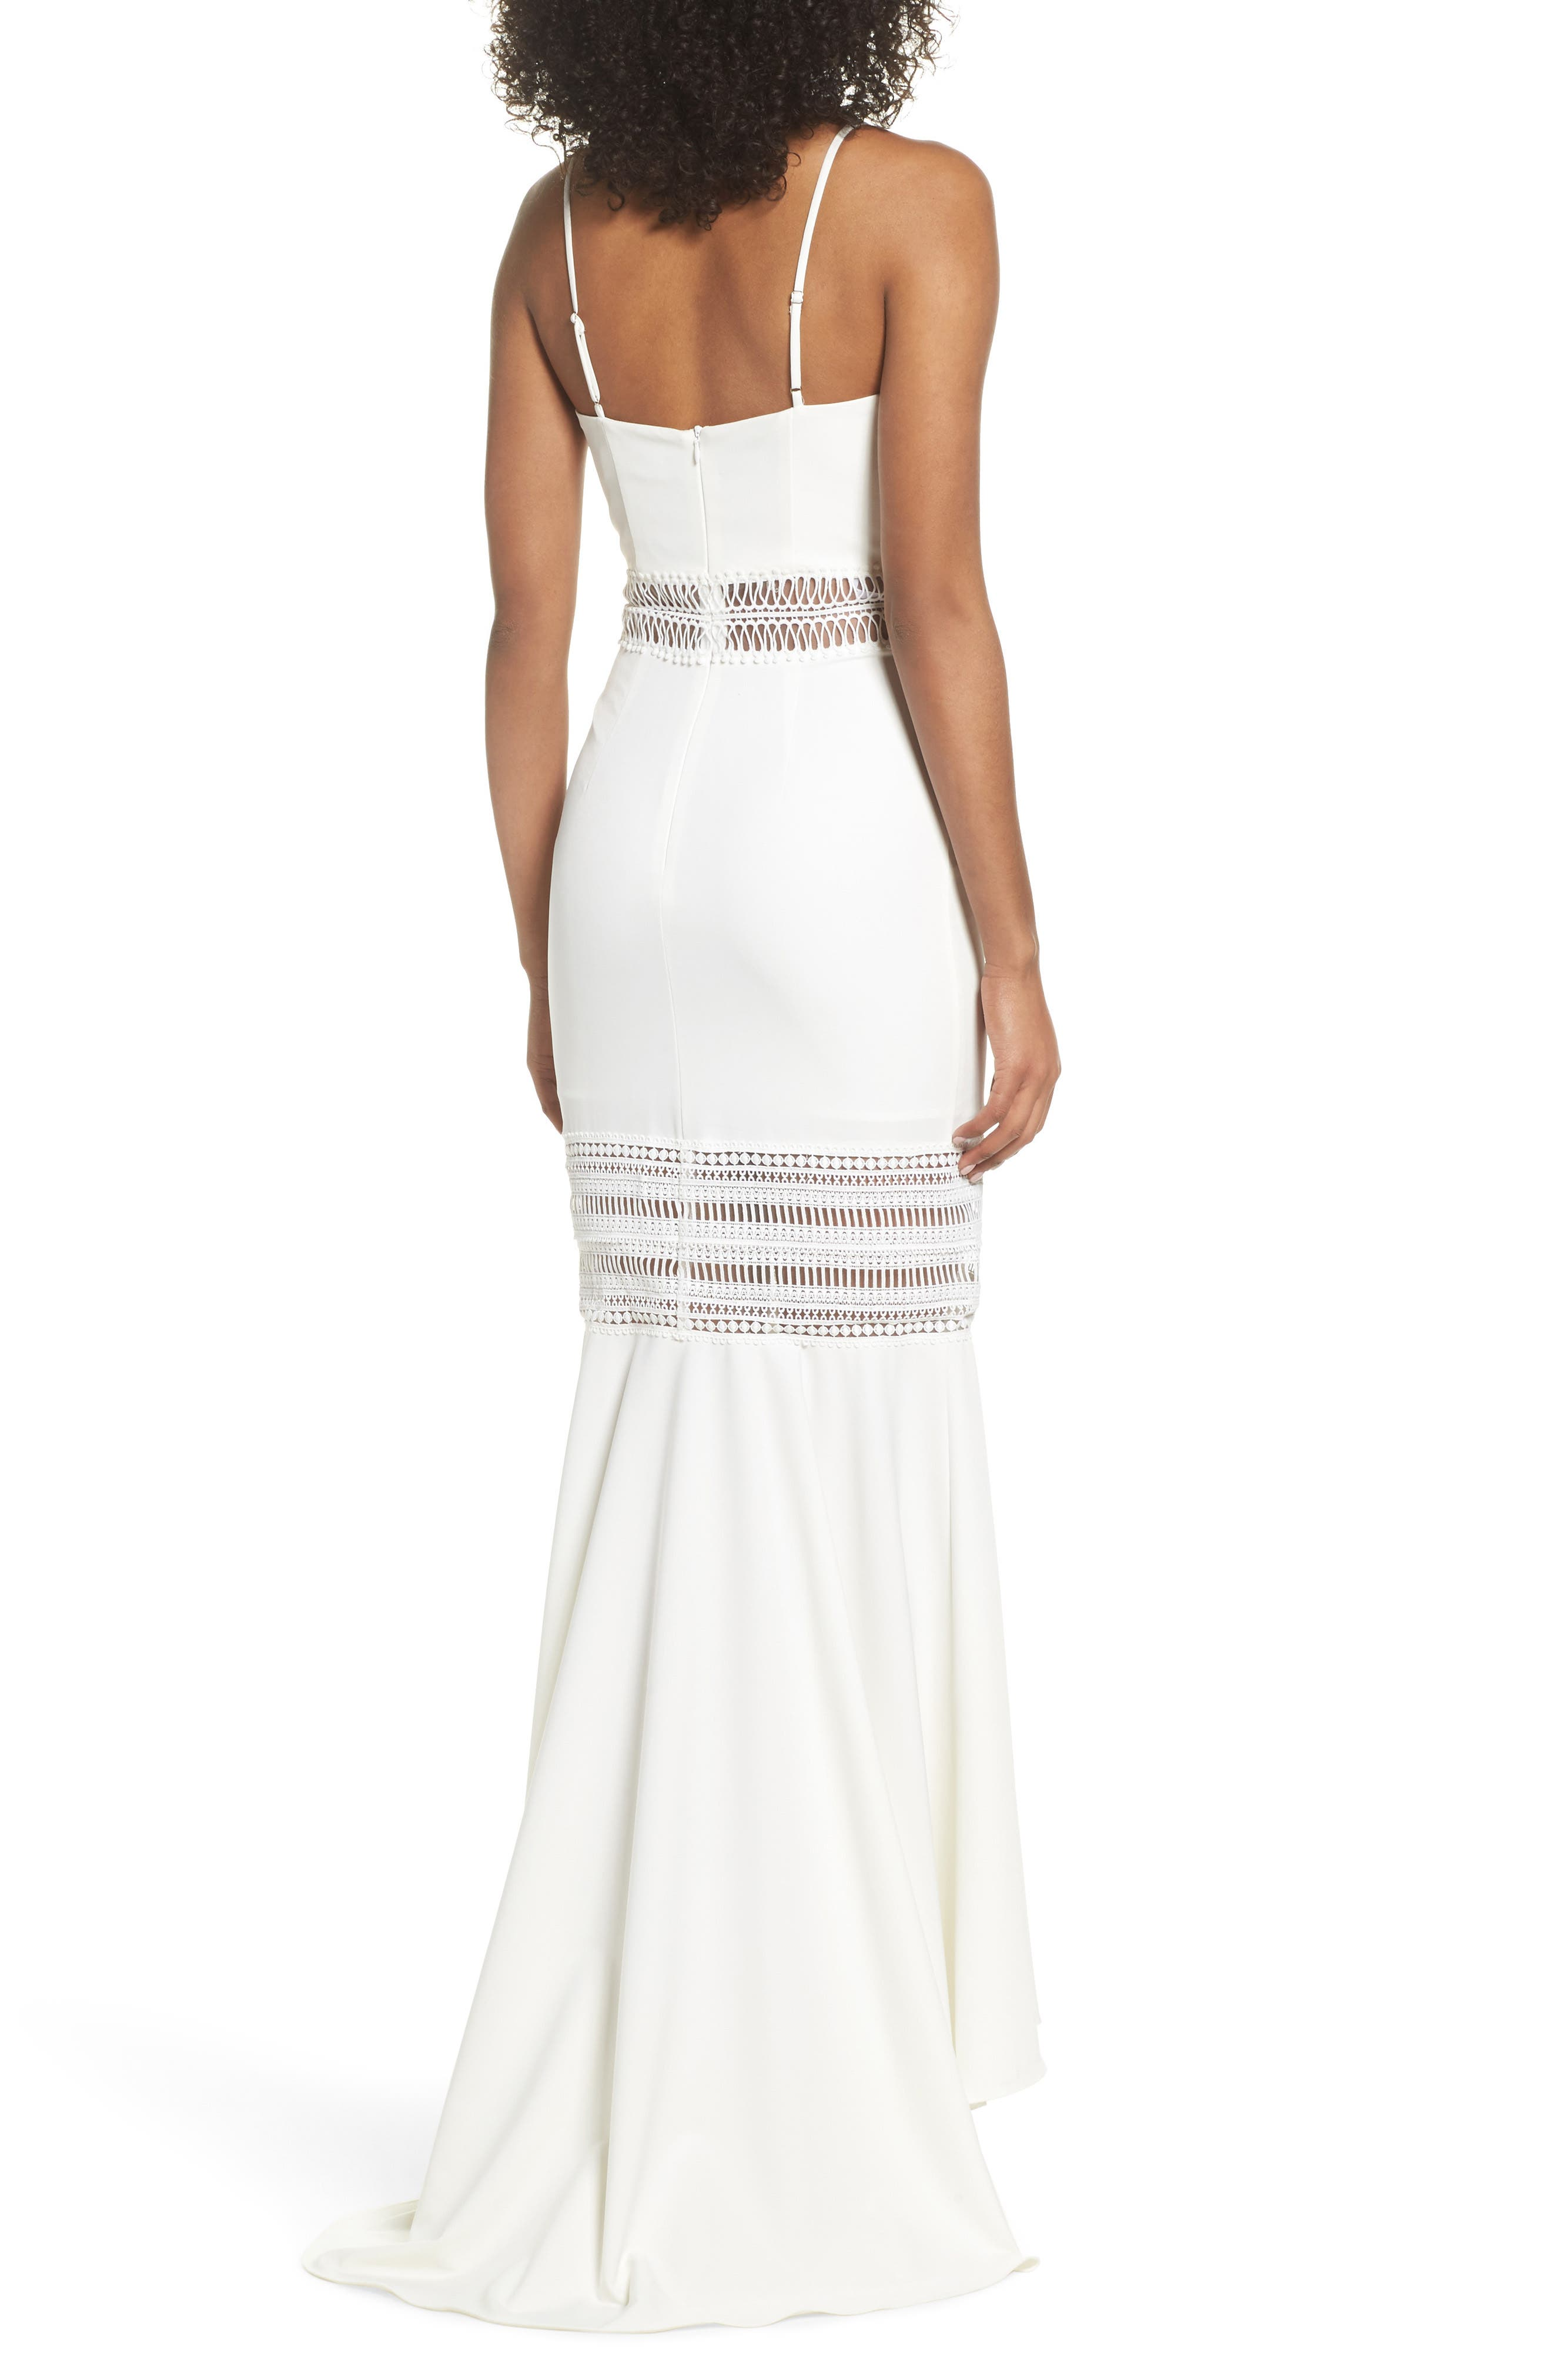 Clarity Openwork Inset Mermaid Gown,                             Alternate thumbnail 2, color,                             Ivory